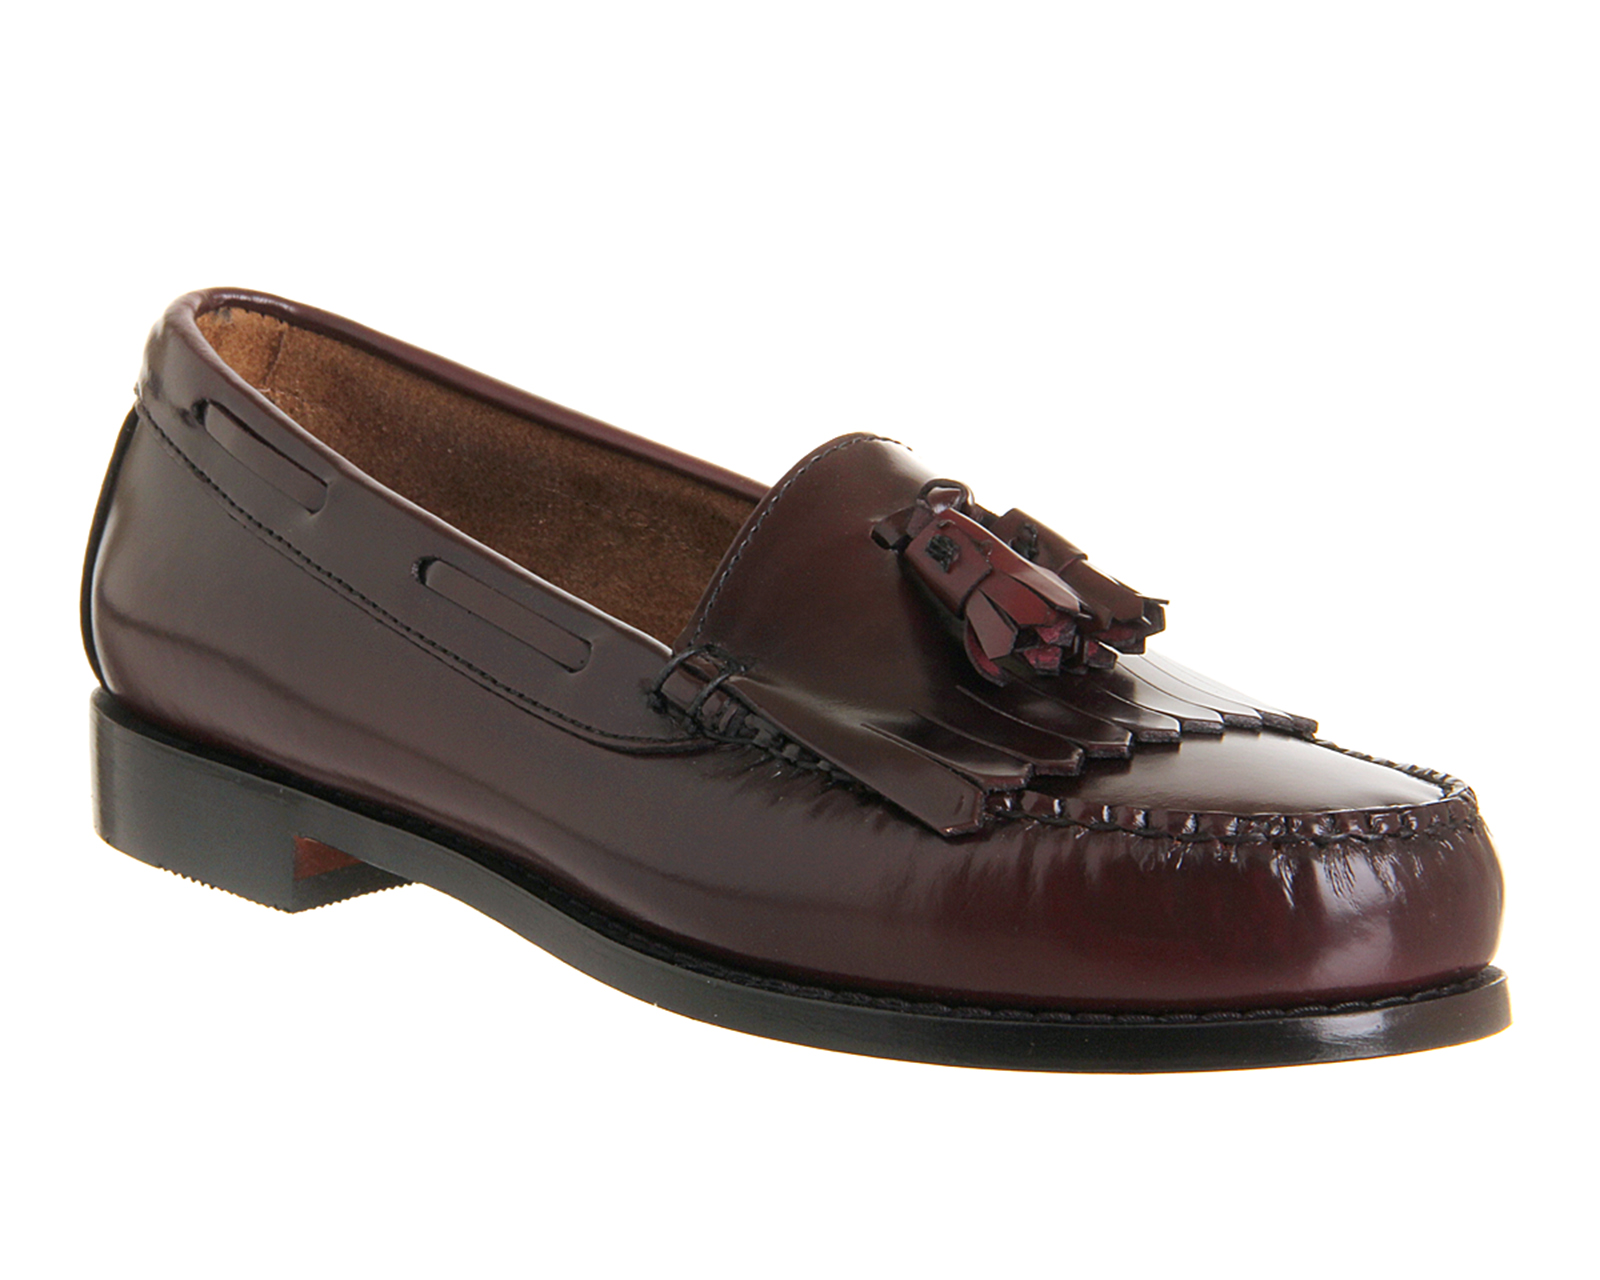 mens g h bass layton tassel loafers burgundy leather